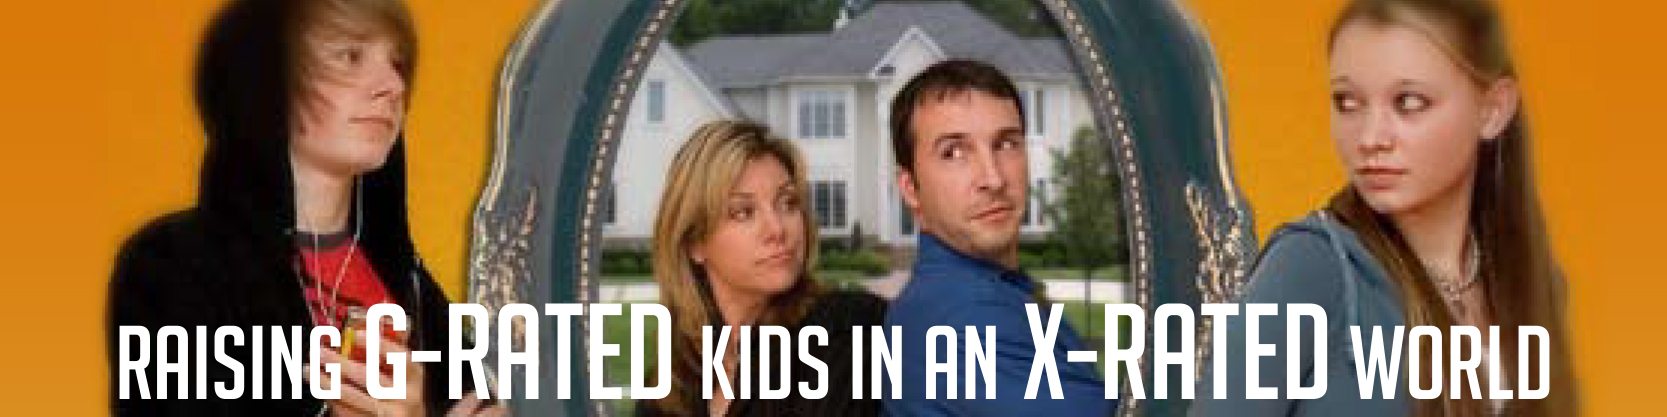 Raising G-Rated Kids in an X-Rated World